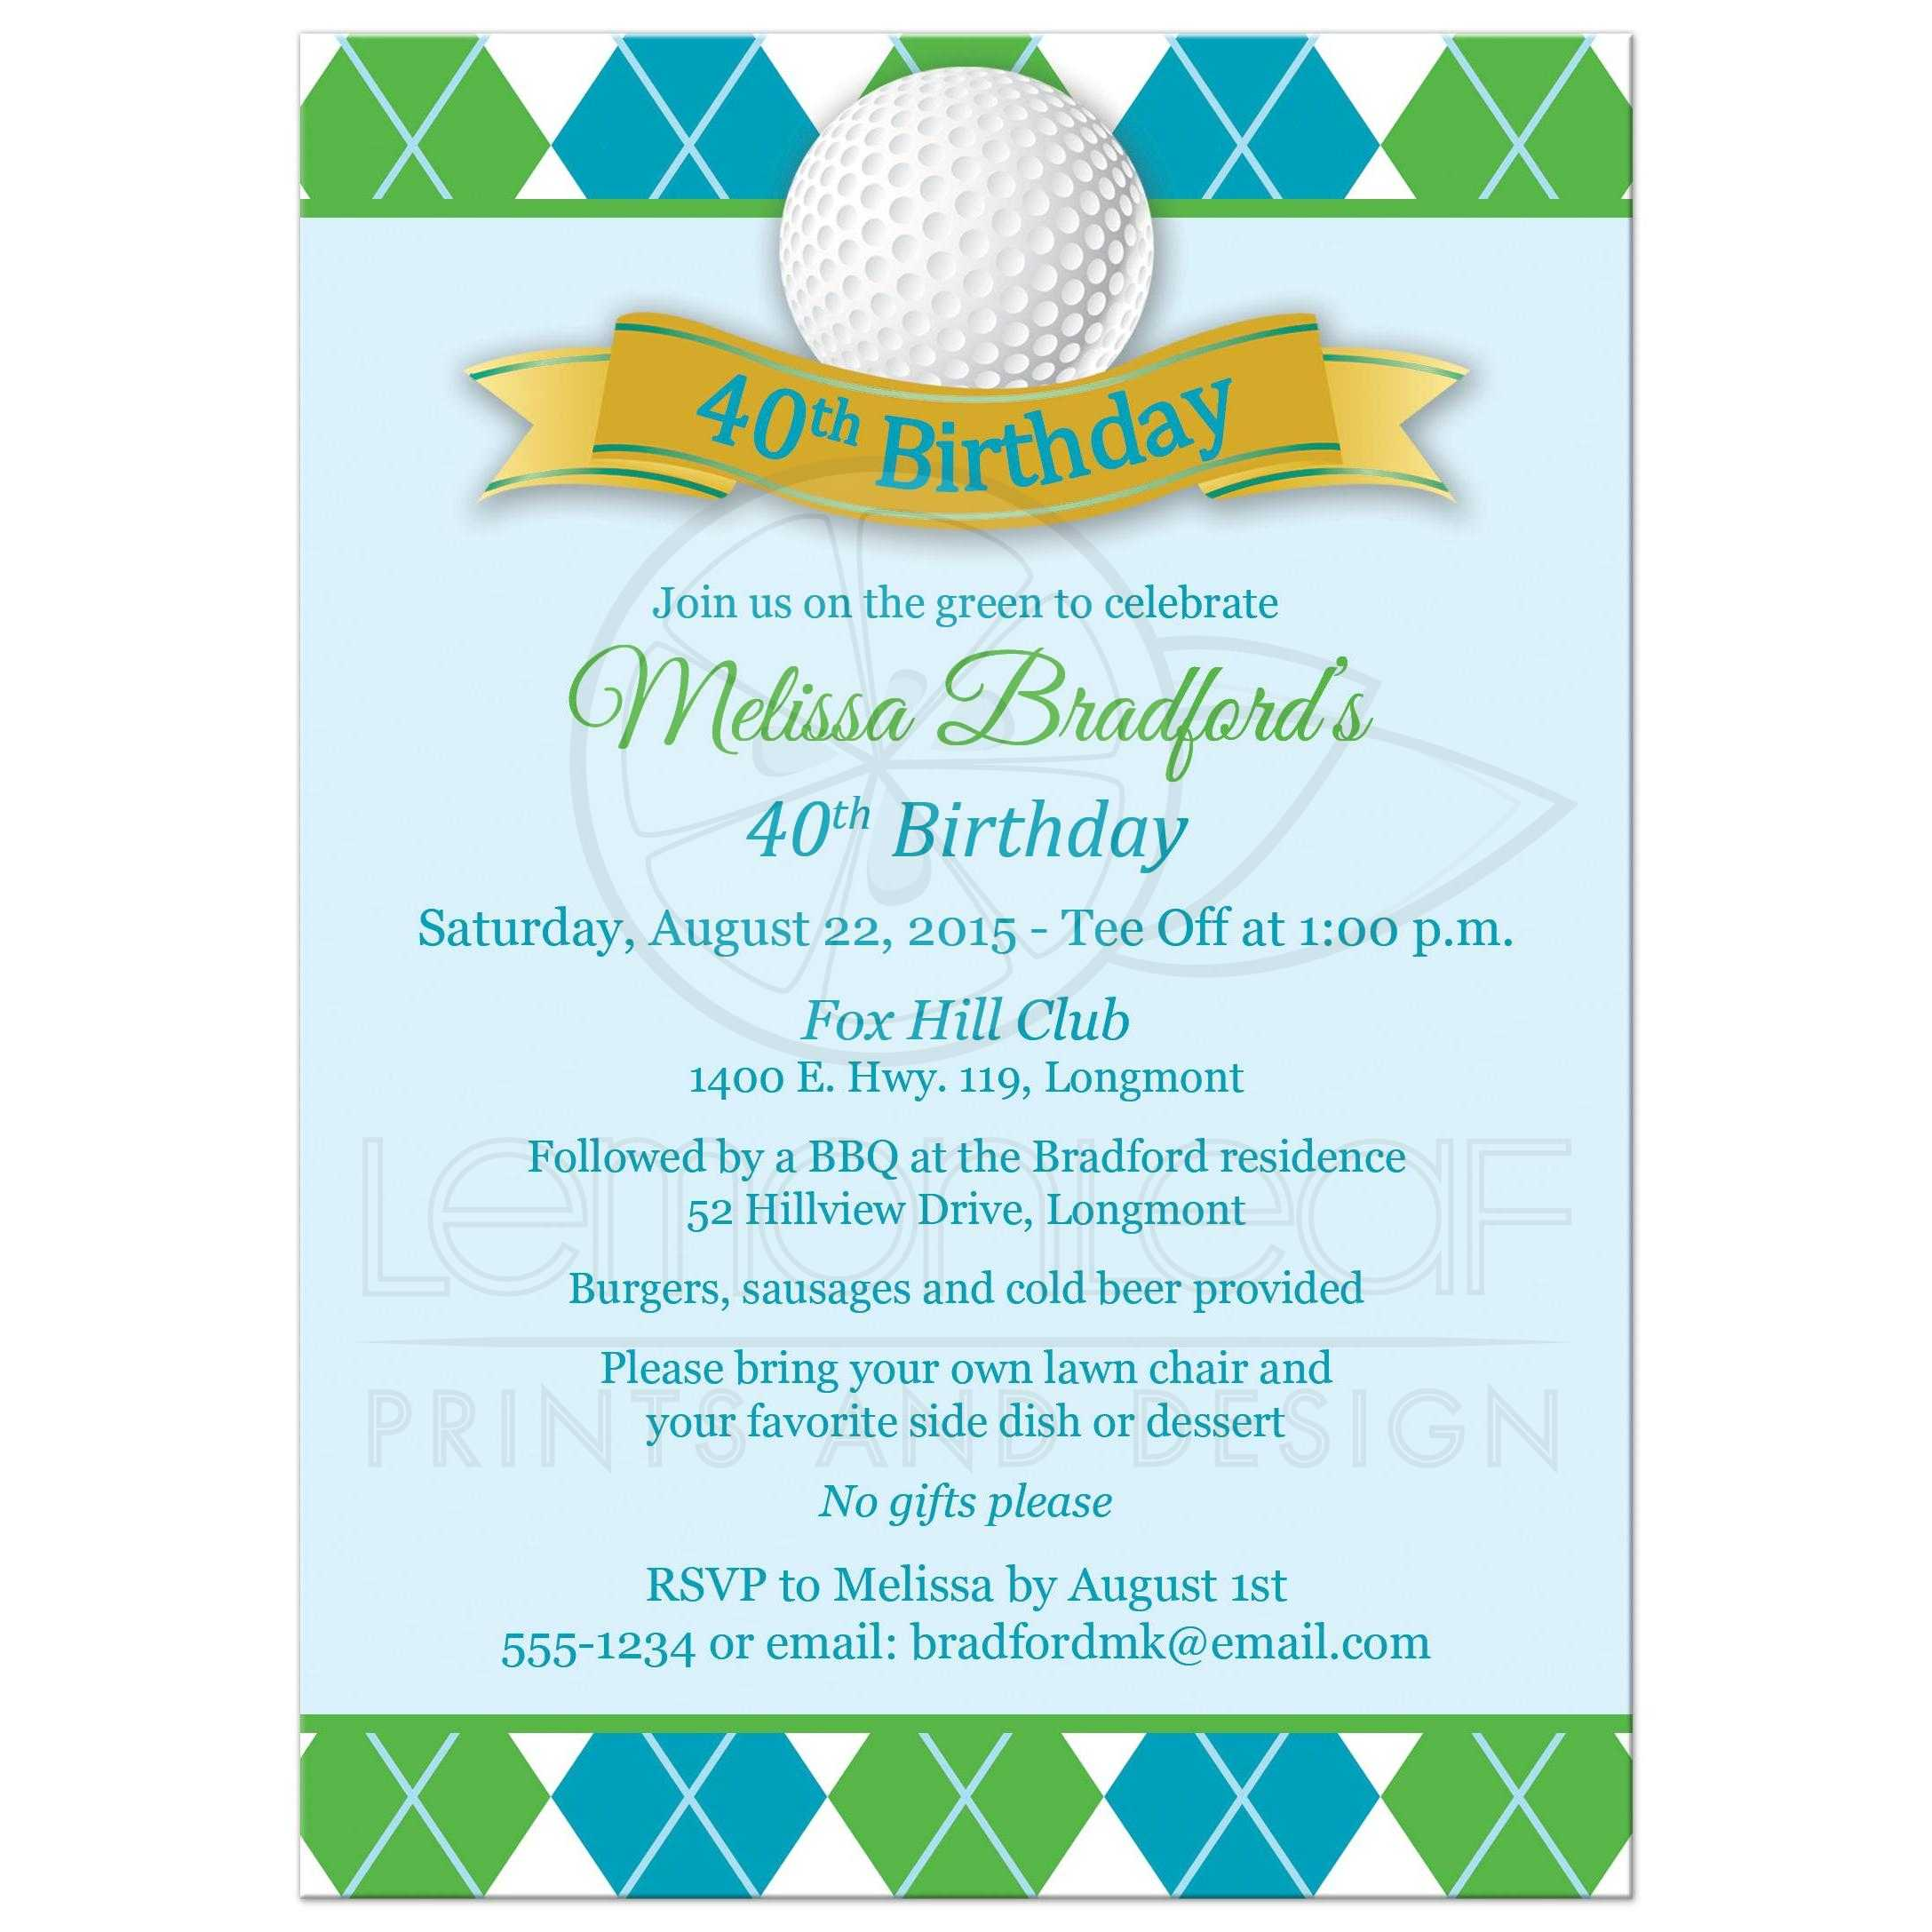 Golf themed birthday party invitations golf ball save the date card neon mini golf birthday invitation by paperdolldesigns14 on etsy filmwisefo